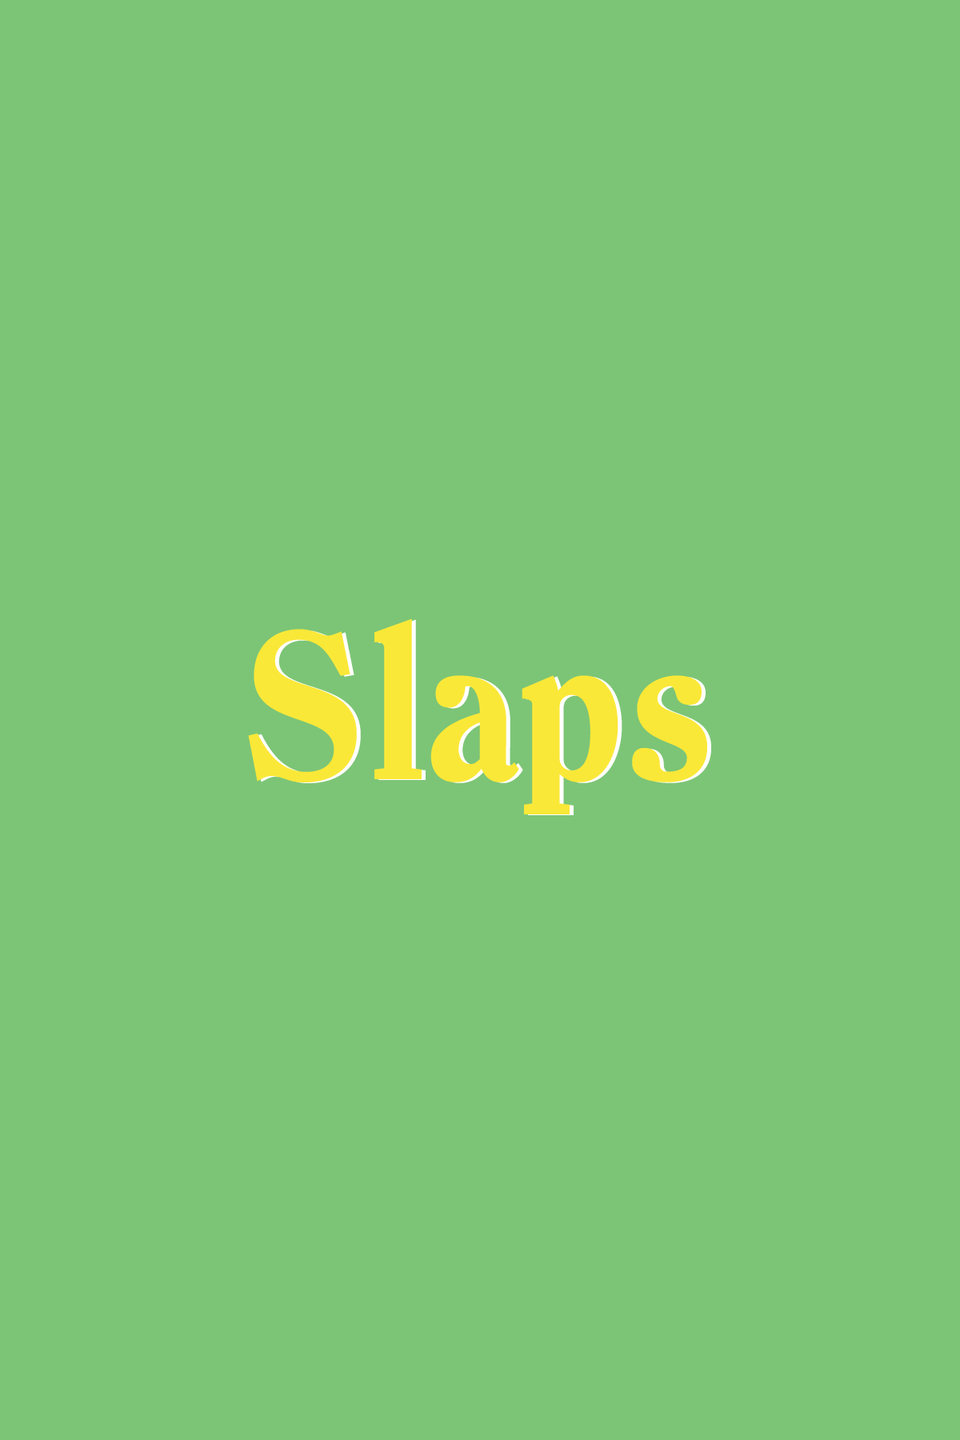 "<p>The good ol' dictionary often helps us better understand slang words today. According to <a href=""https://www.merriam-webster.com/dictionary/slap"" rel=""nofollow noopener"" target=""_blank"" data-ylk=""slk:Merriam-Webster,"" class=""link rapid-noclick-resp"">Merriam-Webster,</a> to slap is to ""strike sharply with or as if with the open hand,"" so the word is now colloquially used to describe something—a song, your meal, new shoes, <em>anything</em>—that strikes you as good, that's impressive. Used in a sentence. <a href=""https://www.oprahdaily.com/life/food/a29473786/oprah-plant-based-diet-plan/"" rel=""nofollow noopener"" target=""_blank"" data-ylk=""slk:This new recipe from Oprah's plant-based diet slaps"" class=""link rapid-noclick-resp"">This new recipe from Oprah's plant-based diet <em>slaps</em></a><em>.</em></p>"